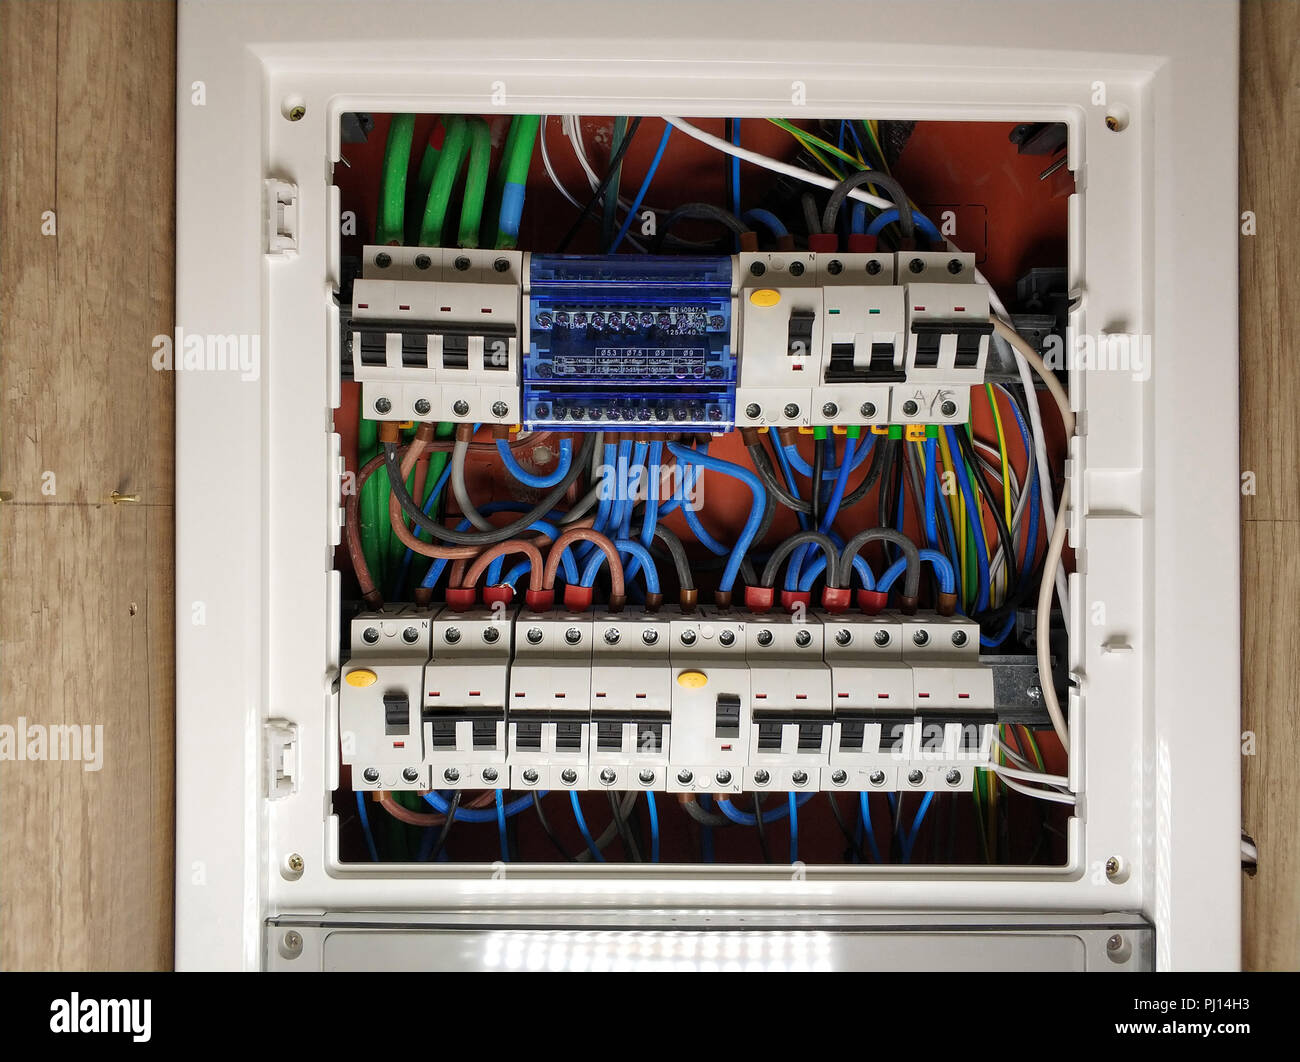 hight resolution of close up of white frame panel electrical switch board with colourful cables automatic circuit switchers breakers and fuses